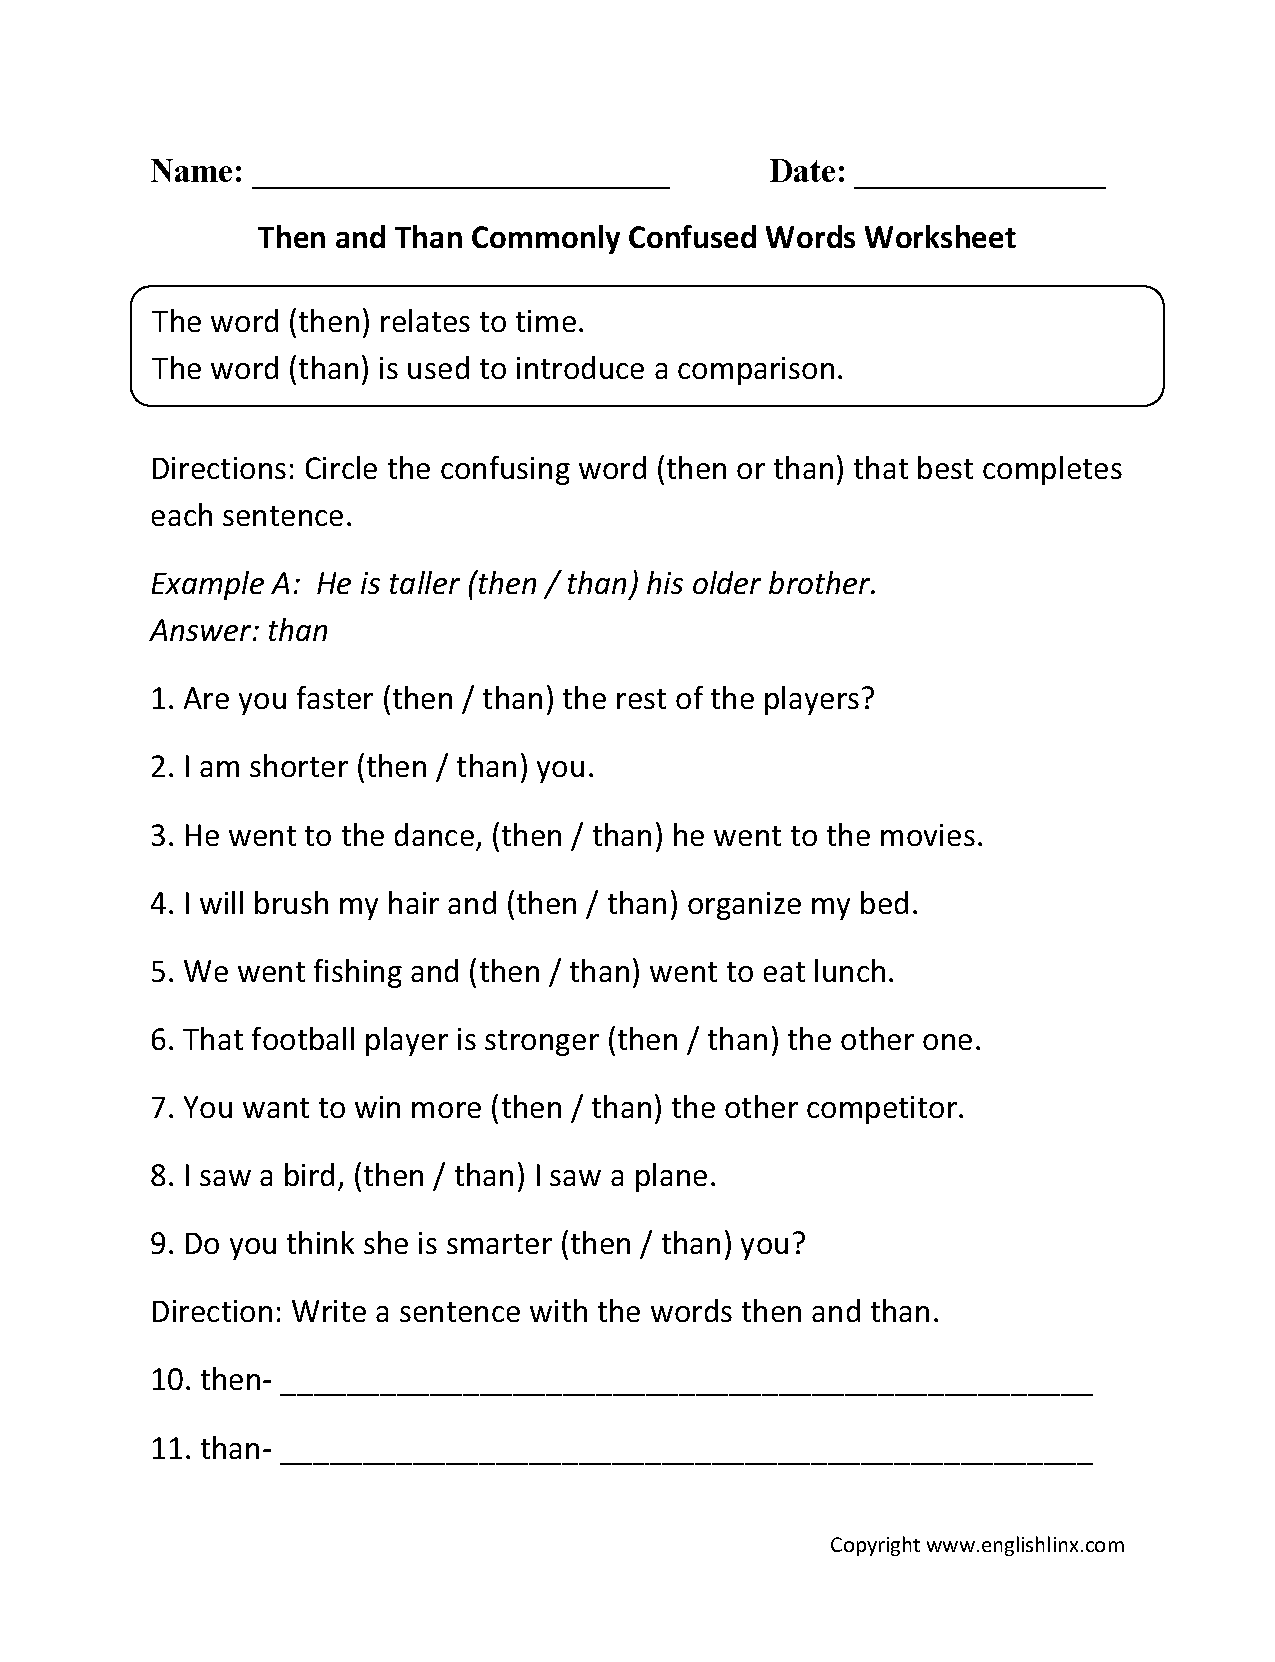 {Commonly Confused Words Worksheets – Then Than Worksheet